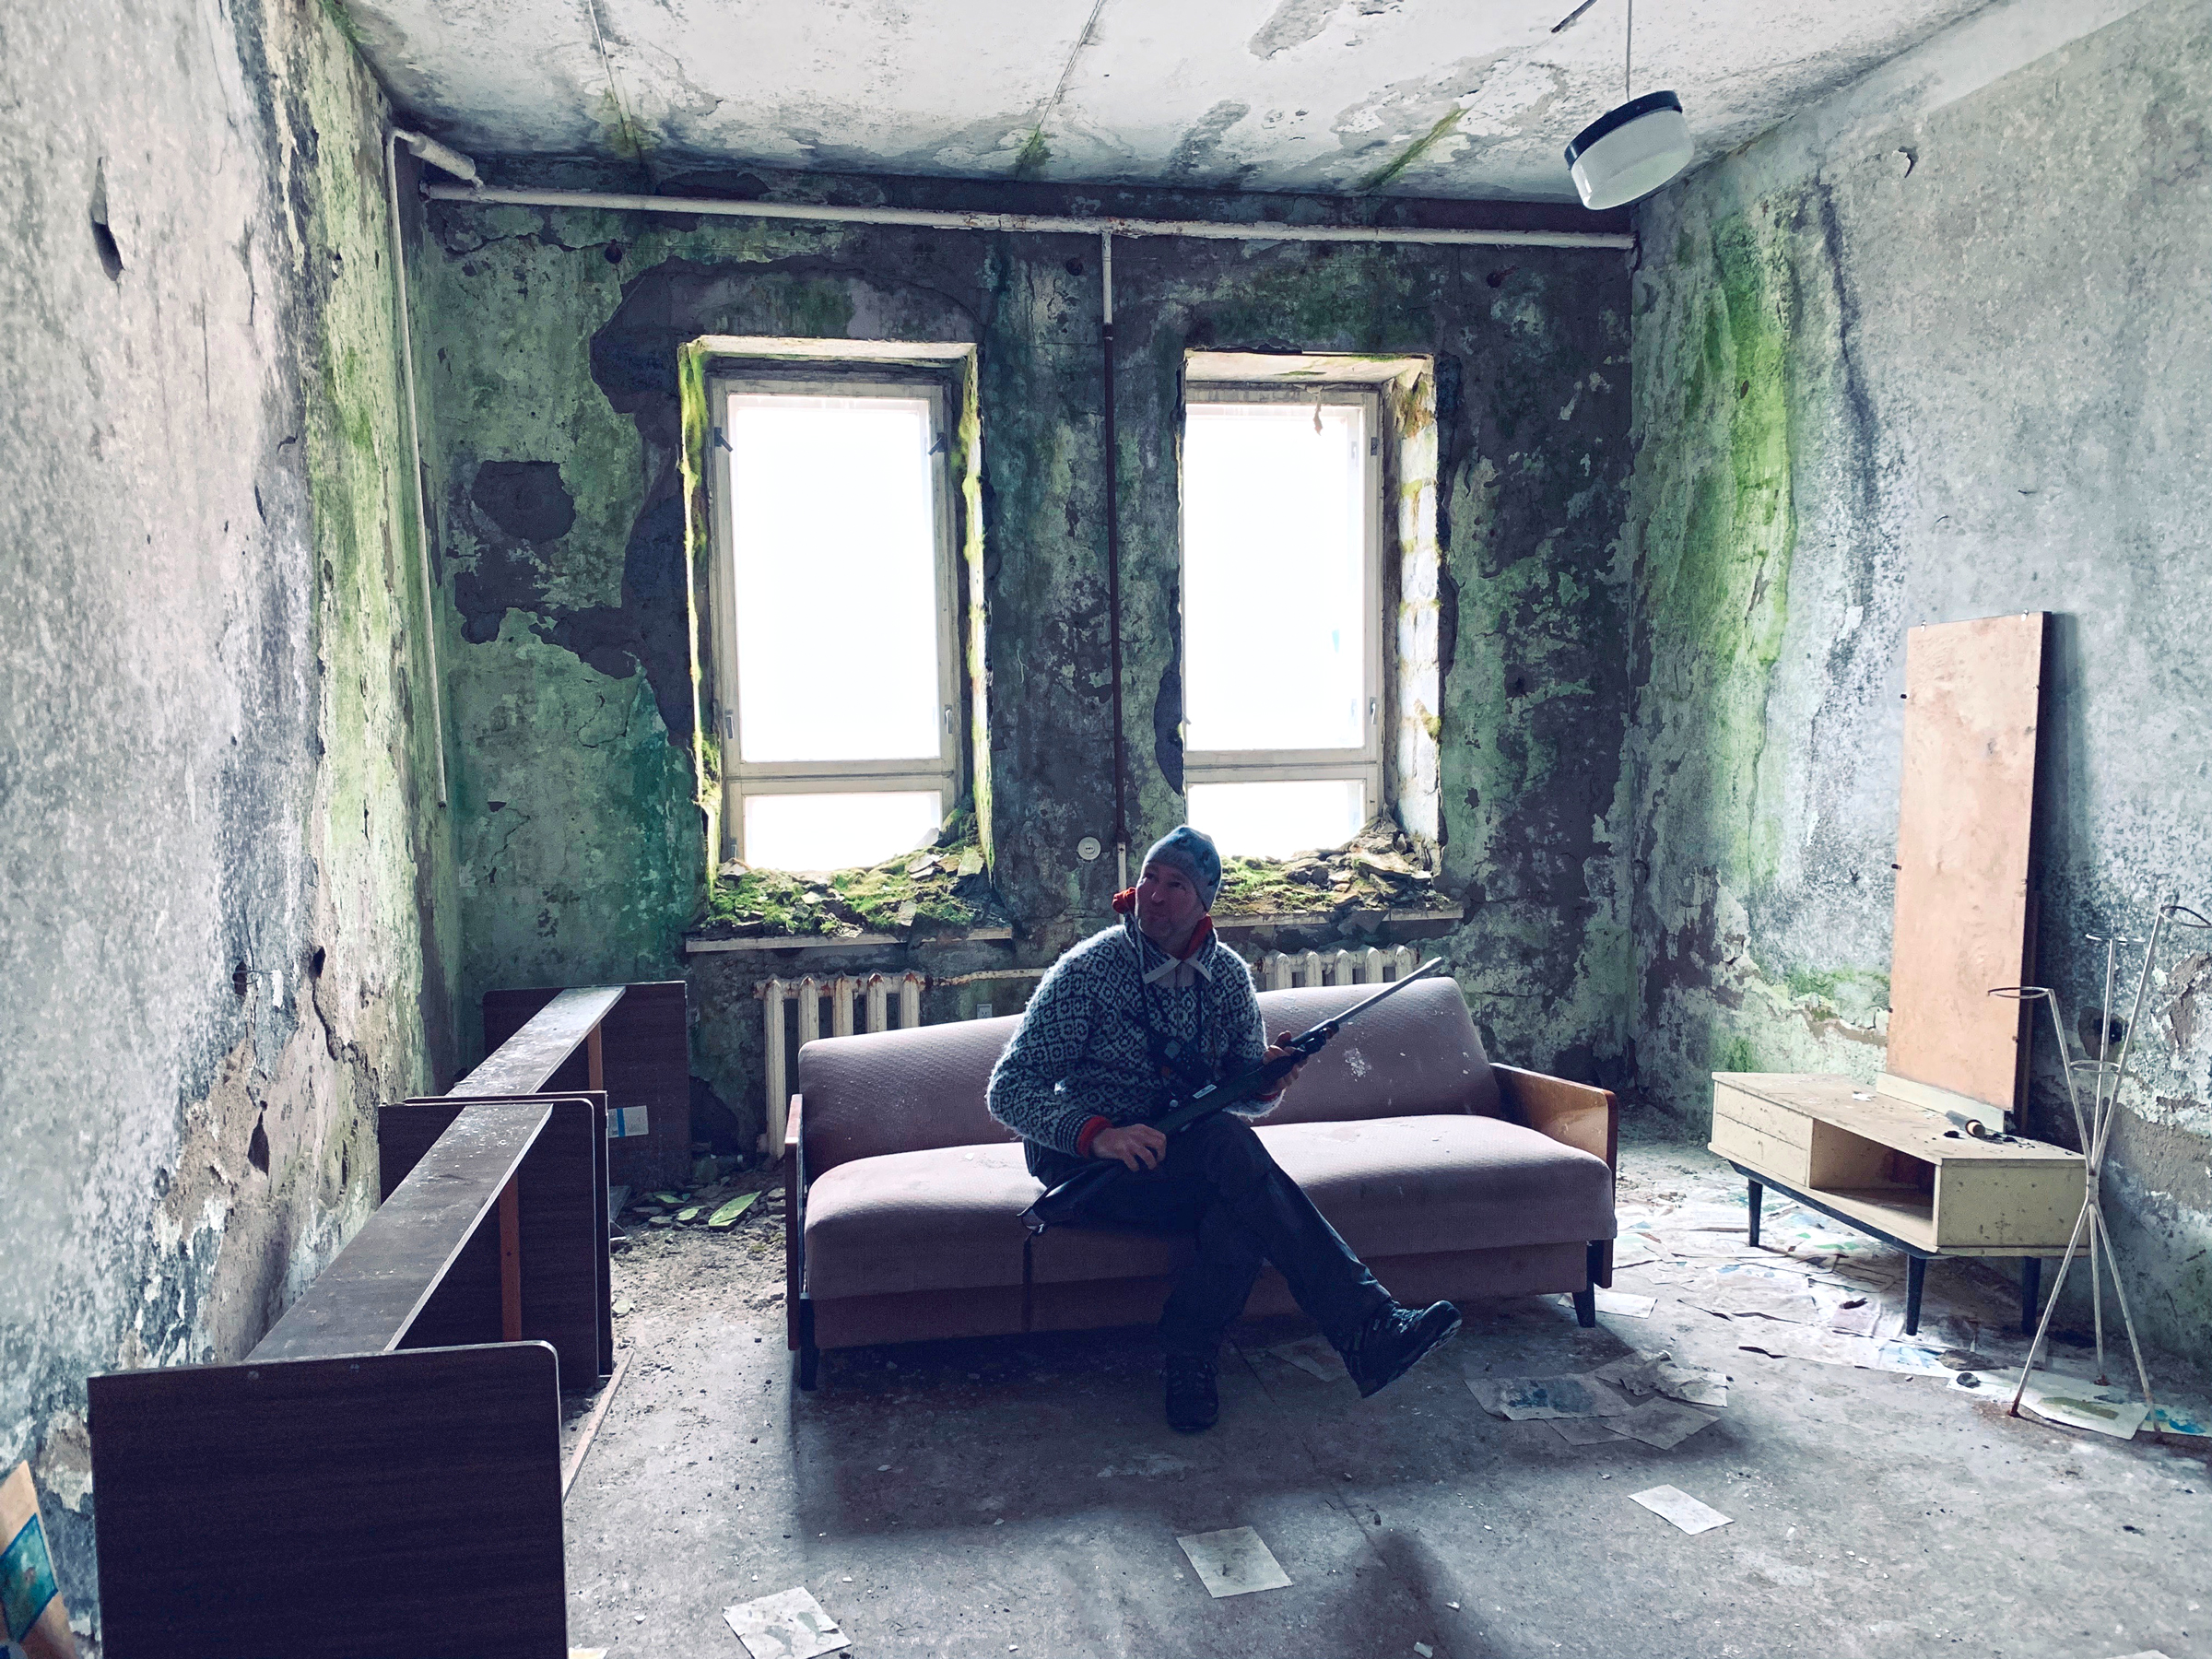 Phil Wickens in the school building at Pyramiden (Mike Watson).